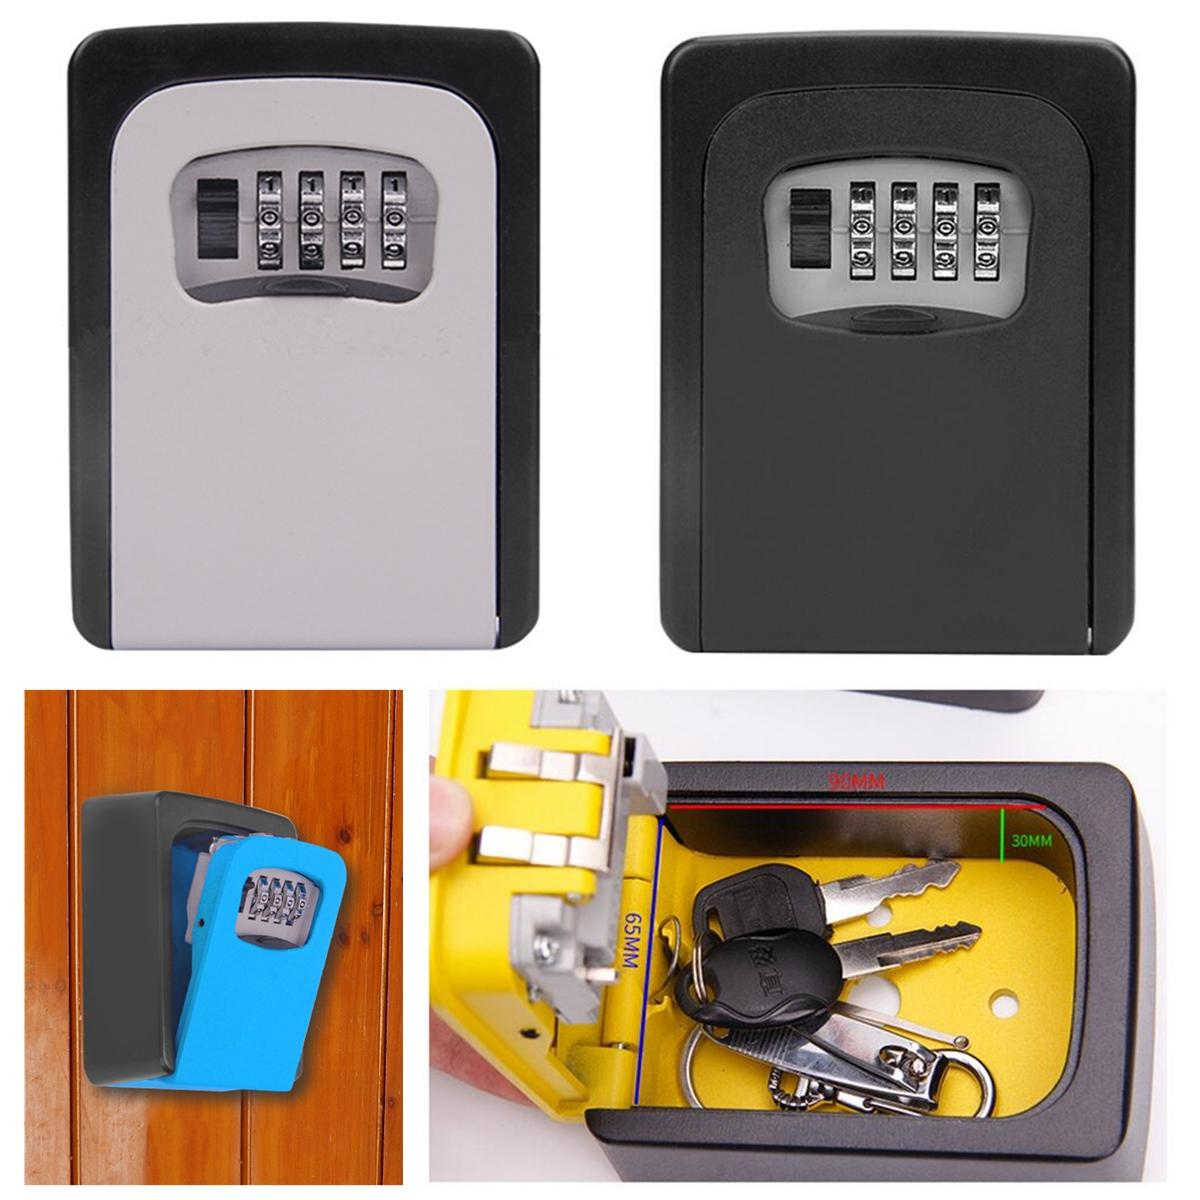 Durable Key Storage Lock Security Box Wall Mount Holder 4 Digit Combination Safe Organizer For Home Office Cassaforte Seguridad